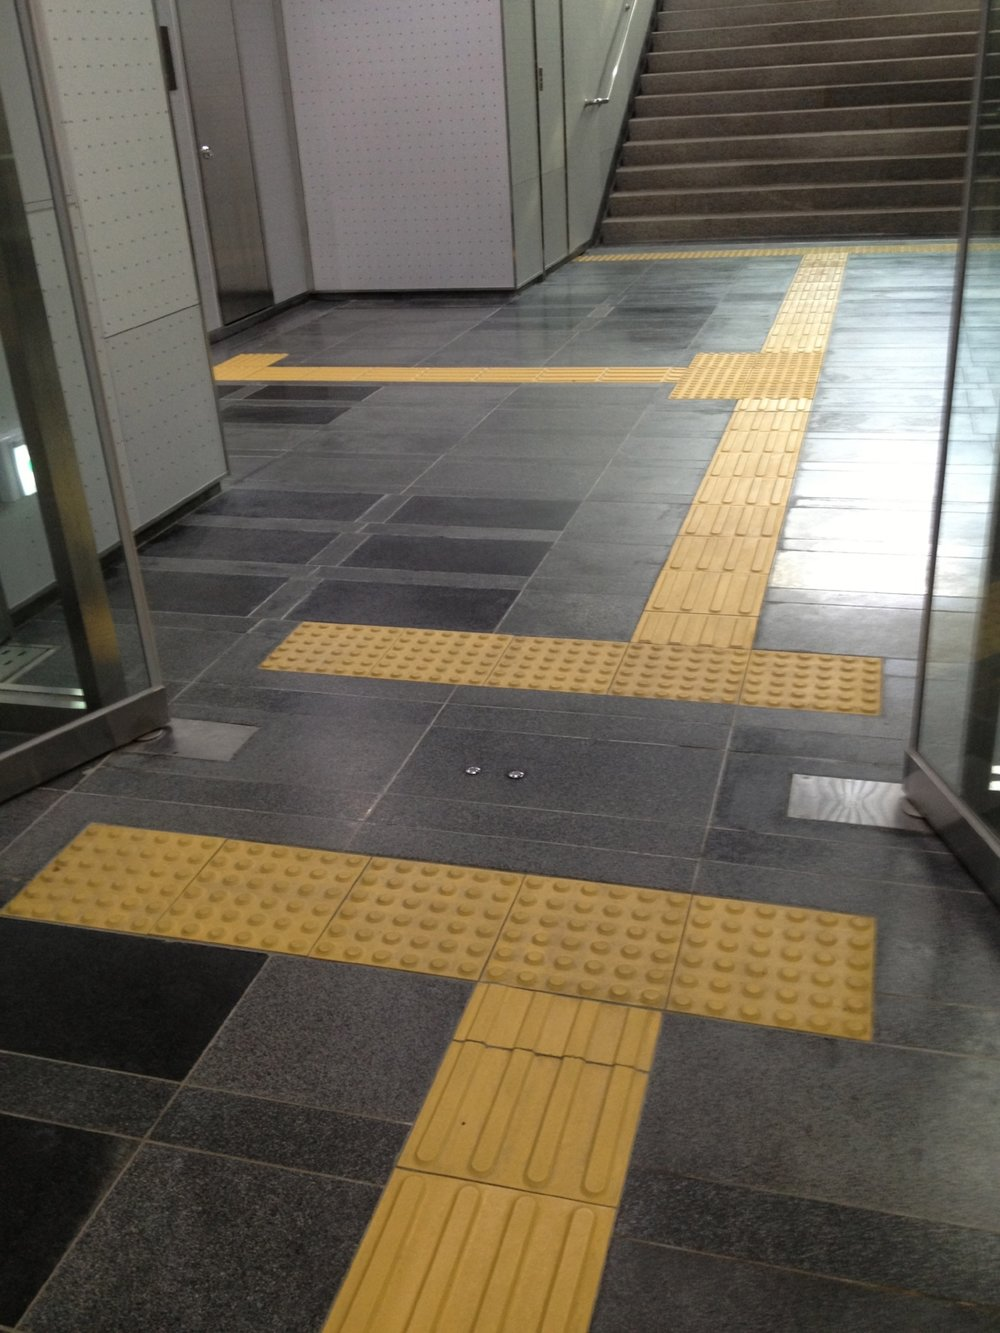 Example of Wayfinding